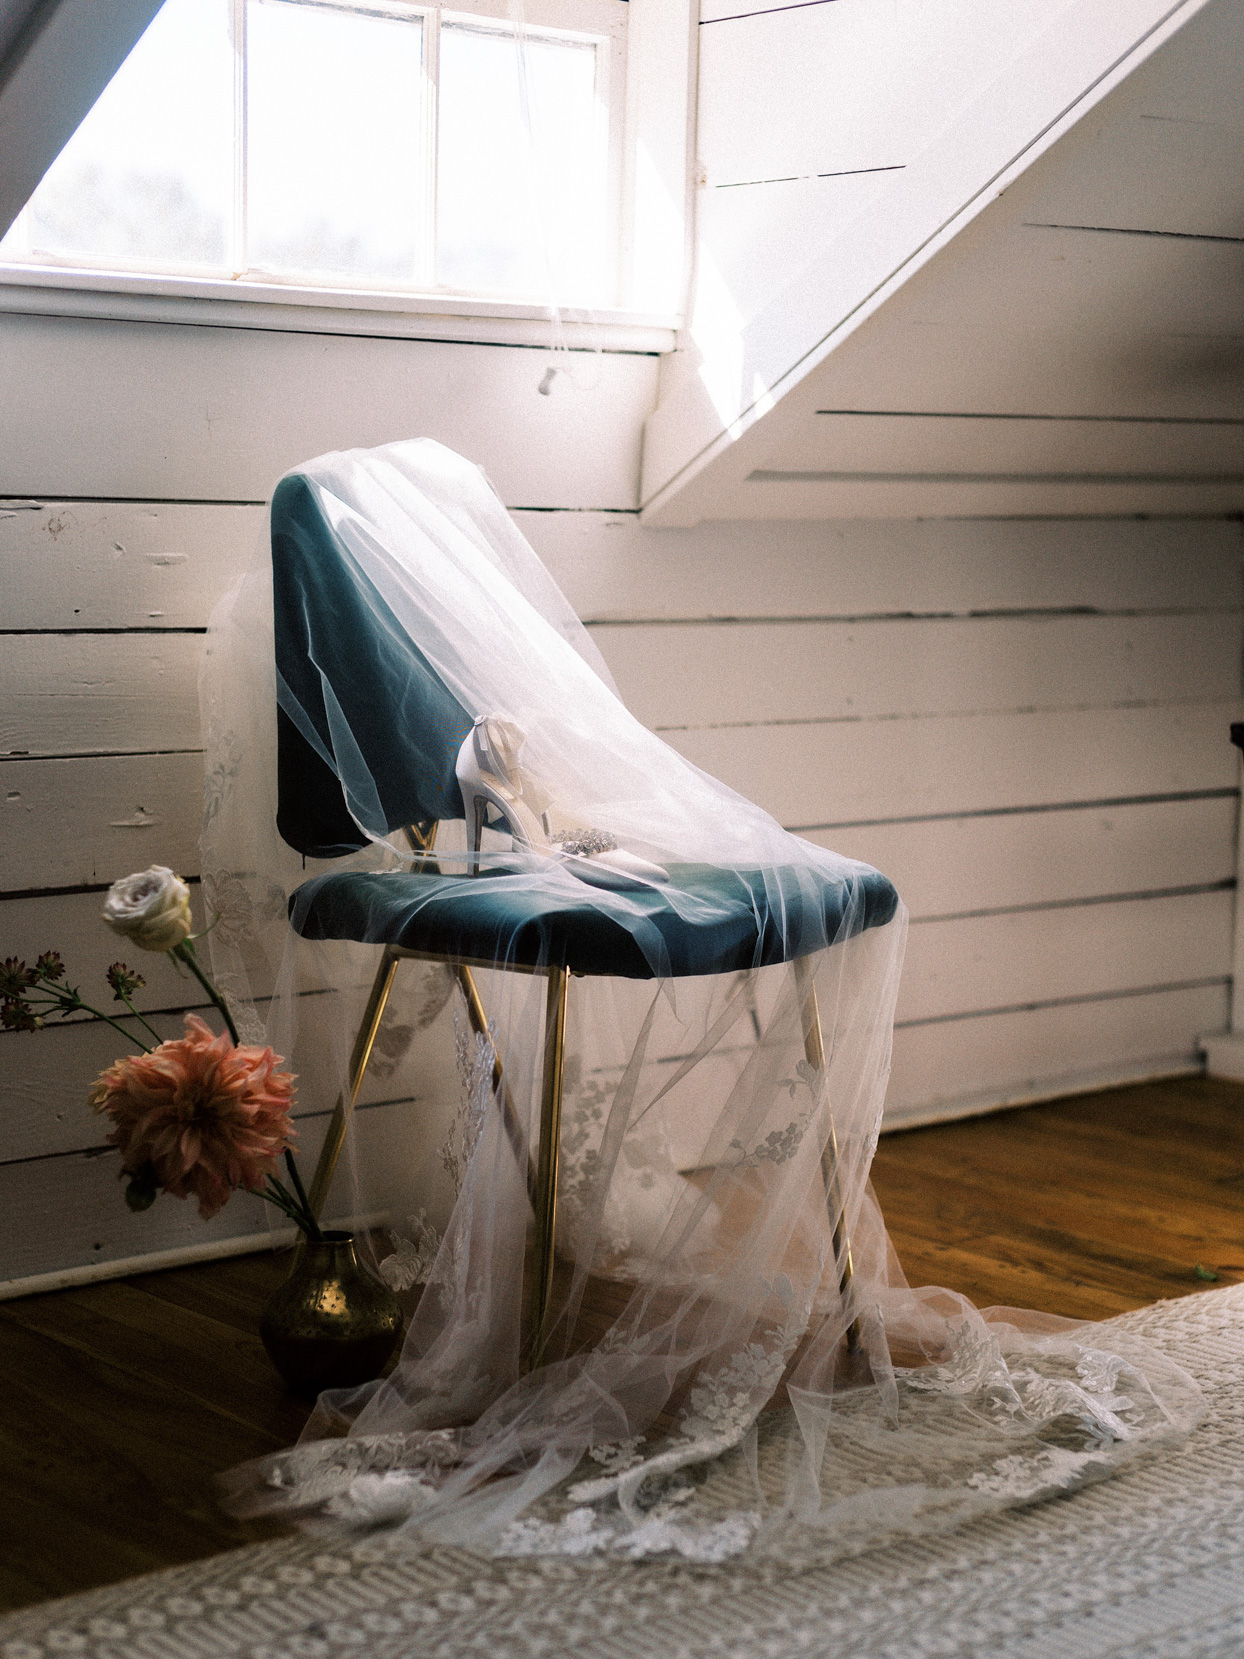 antique chair with wedding accessories sitting on it in attic corner